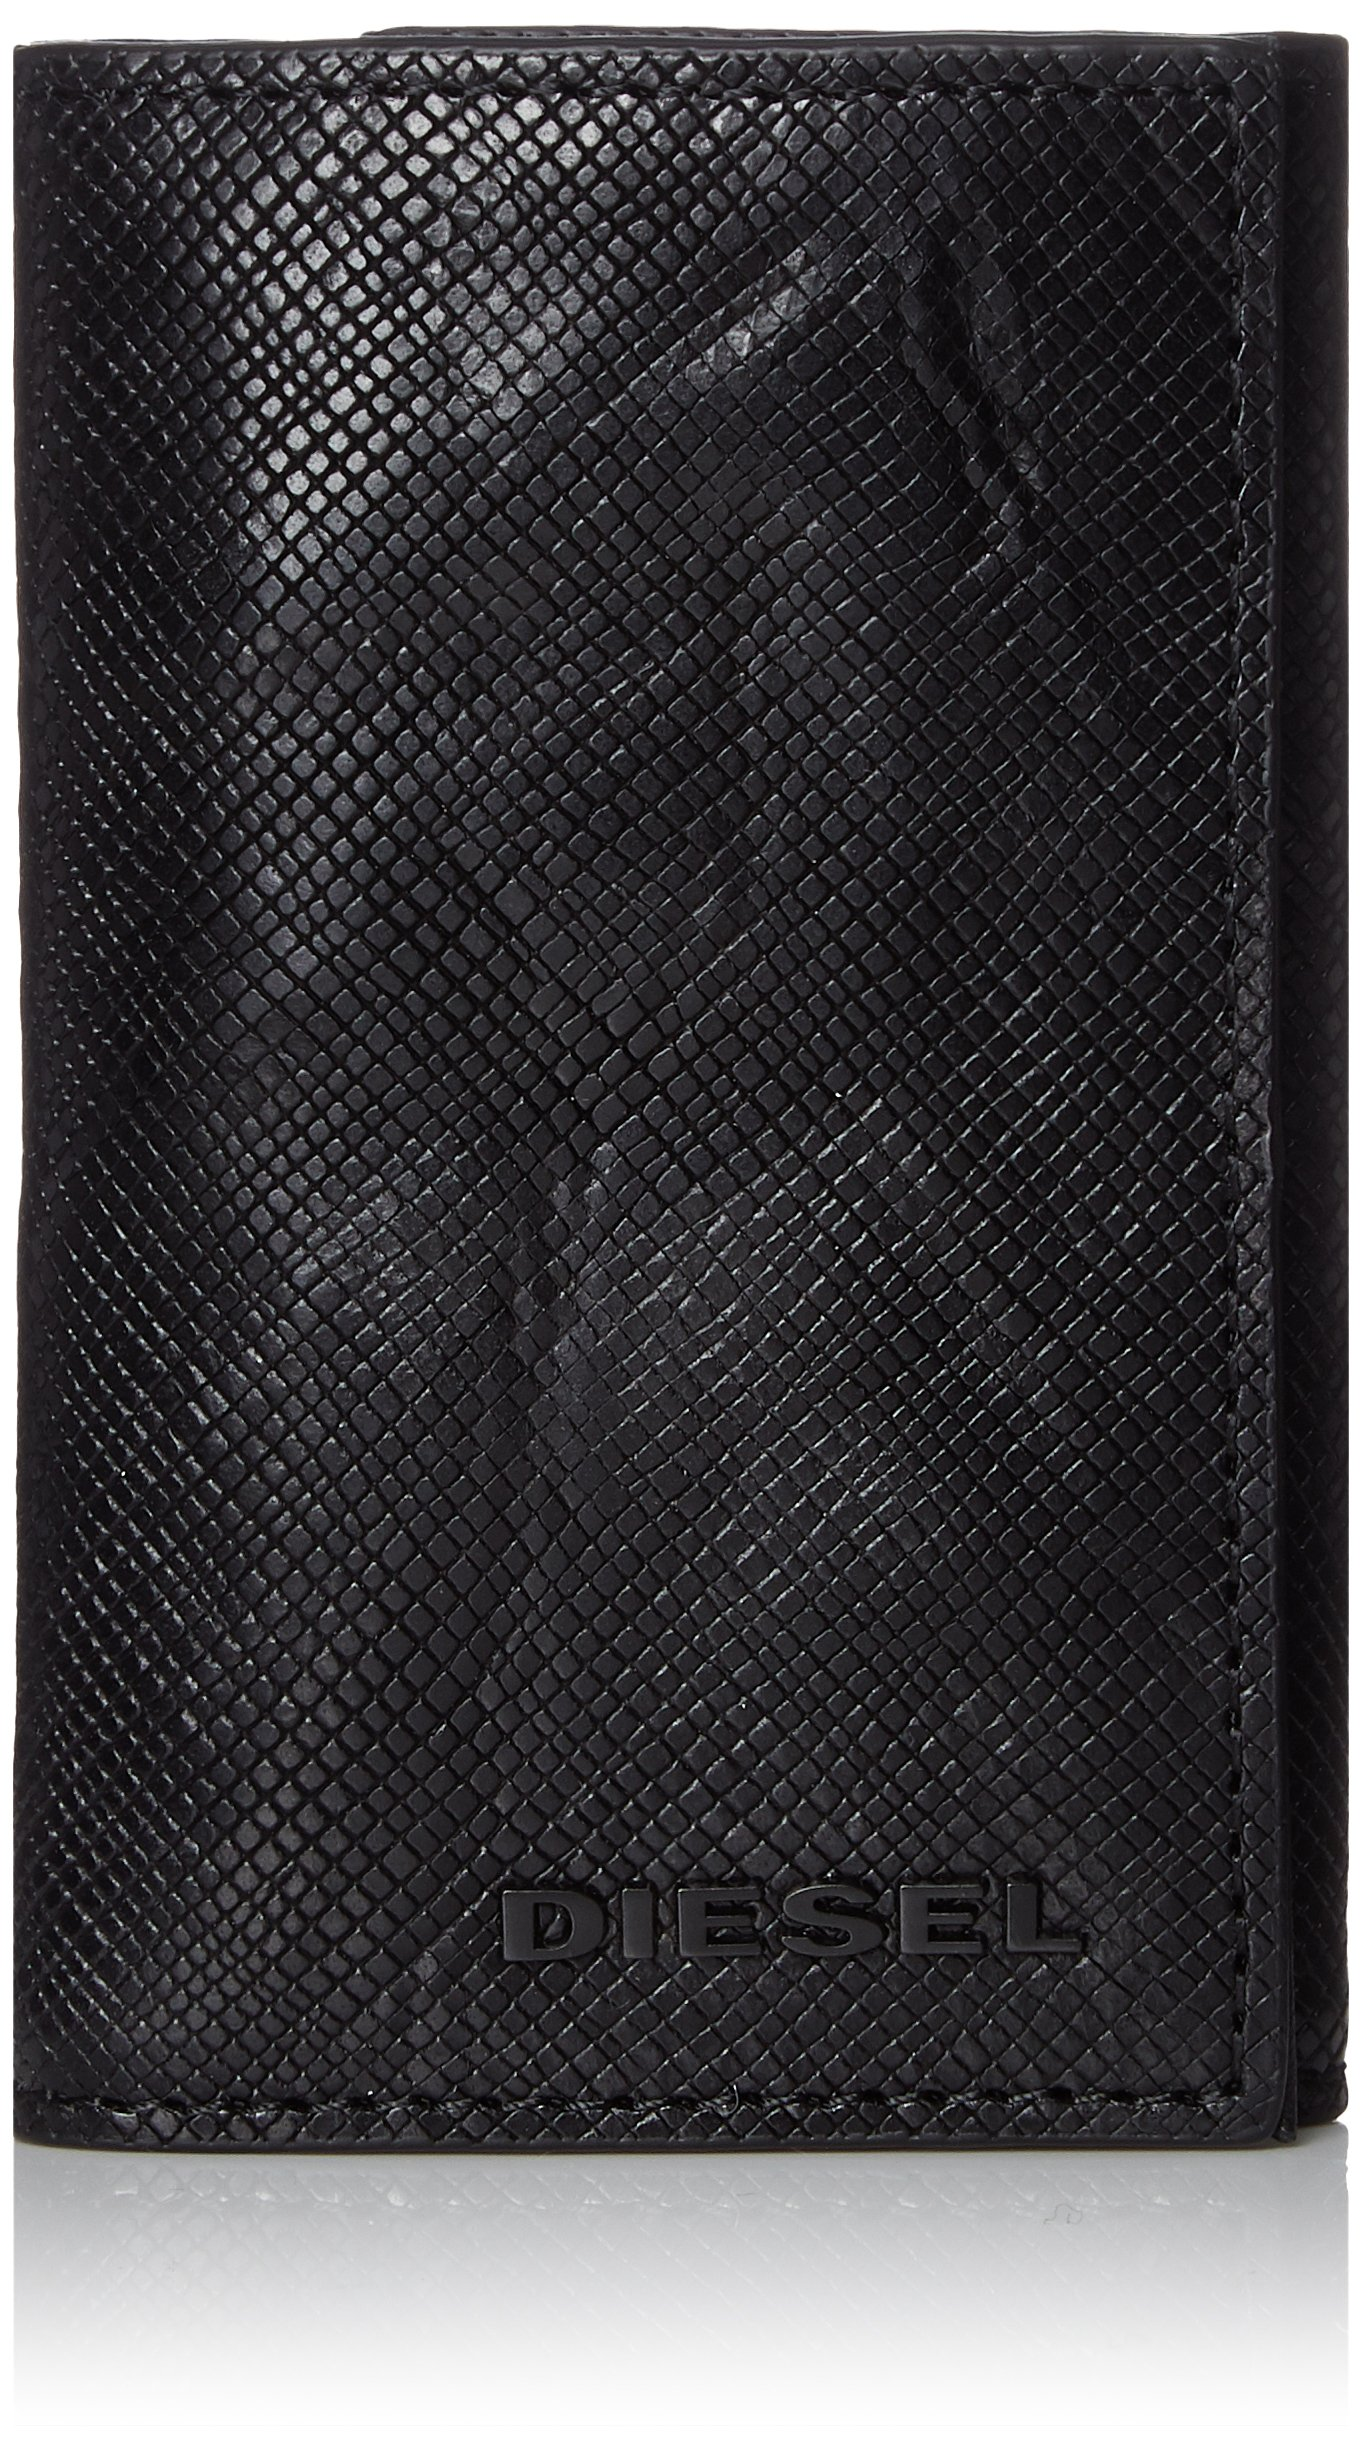 Diesel Men's Sunburst KEYCASE O-Keyring, Black, One Size